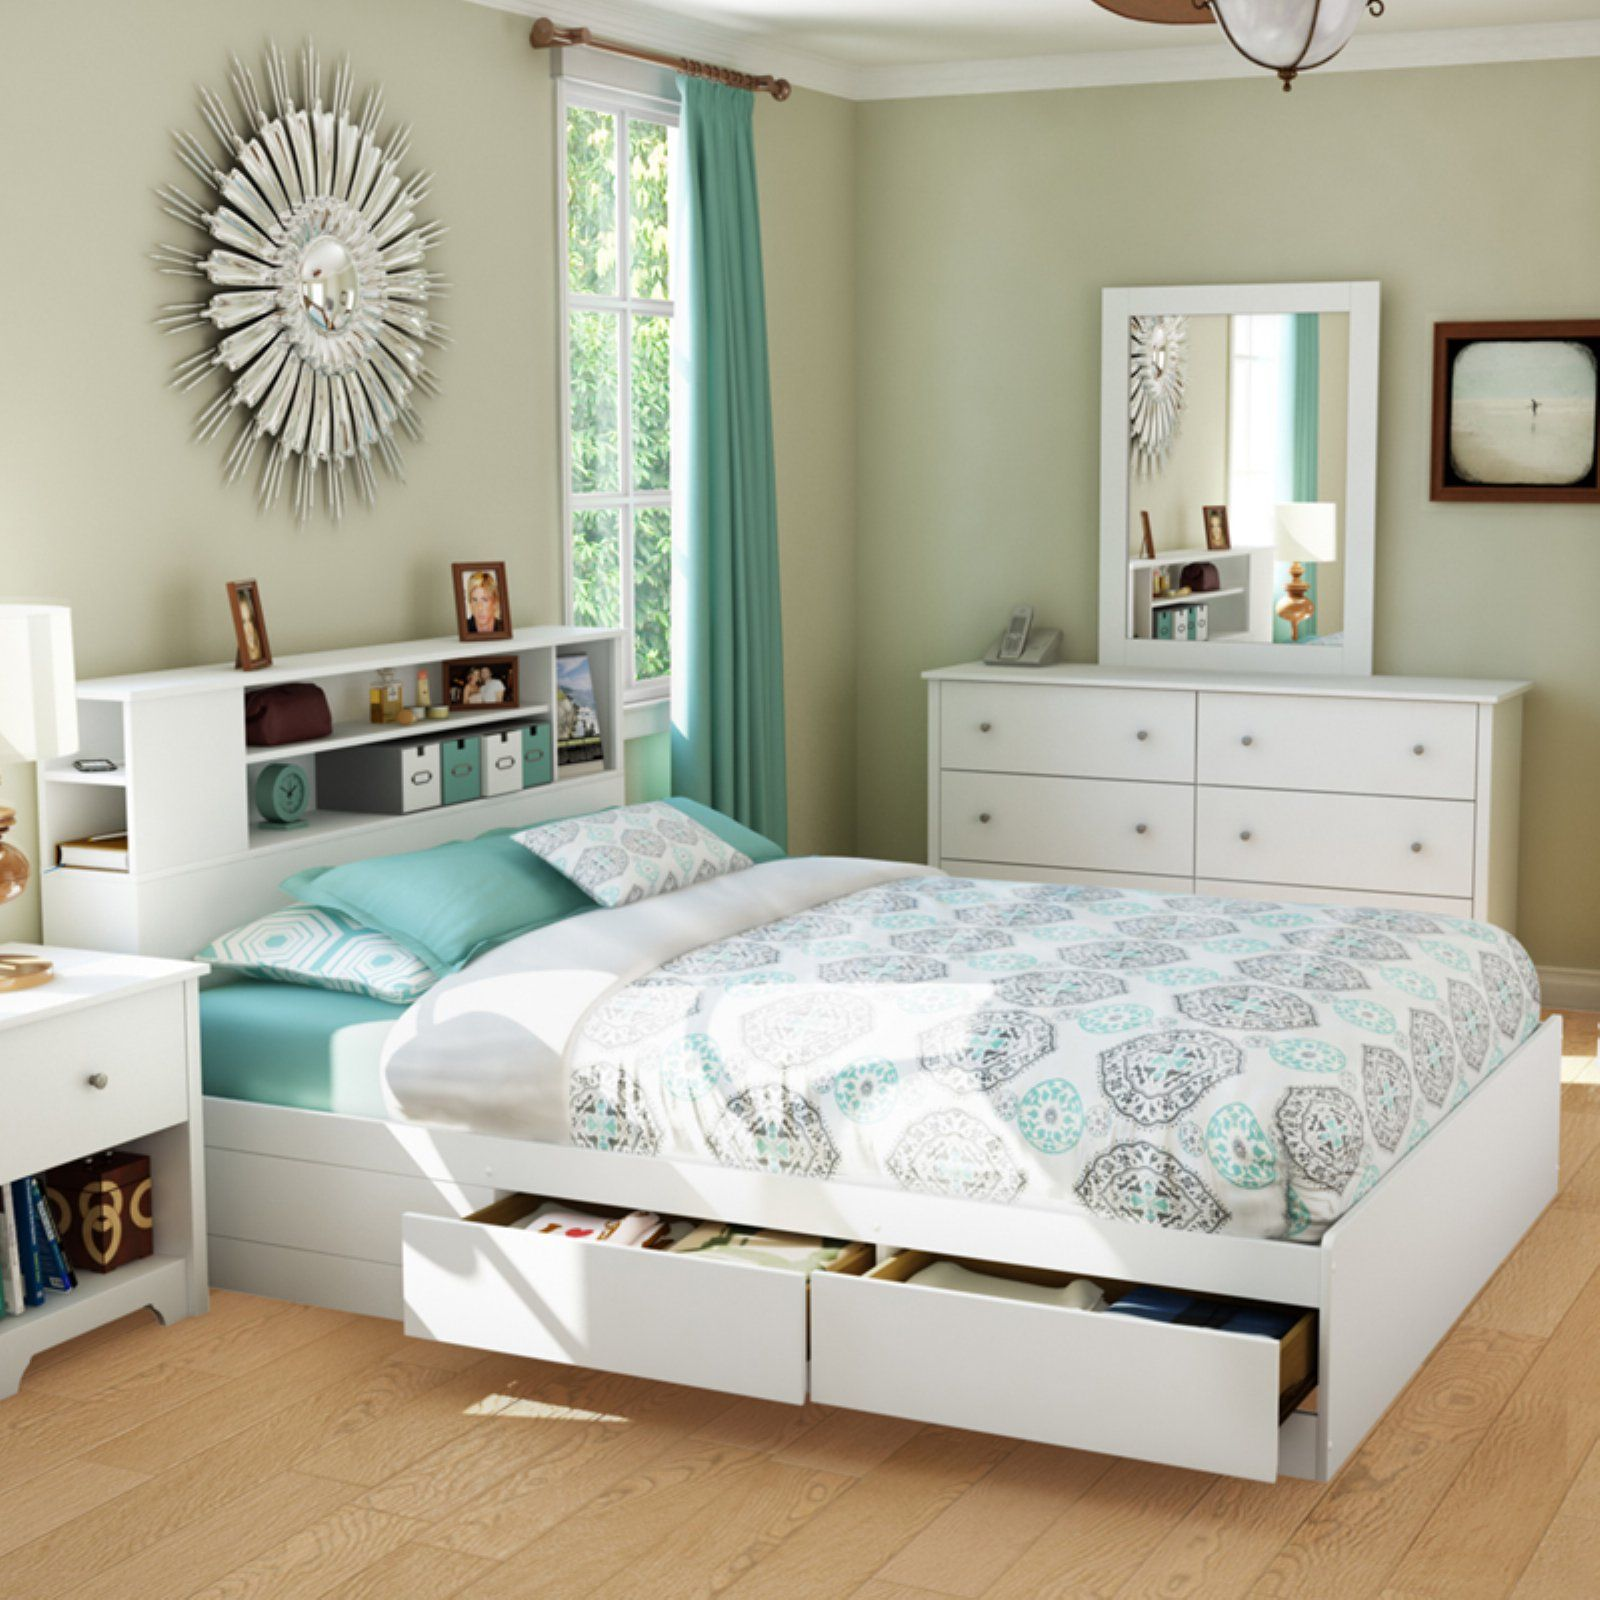 South Shore Vito Queen Mates Bed With Drawers And Bookcase